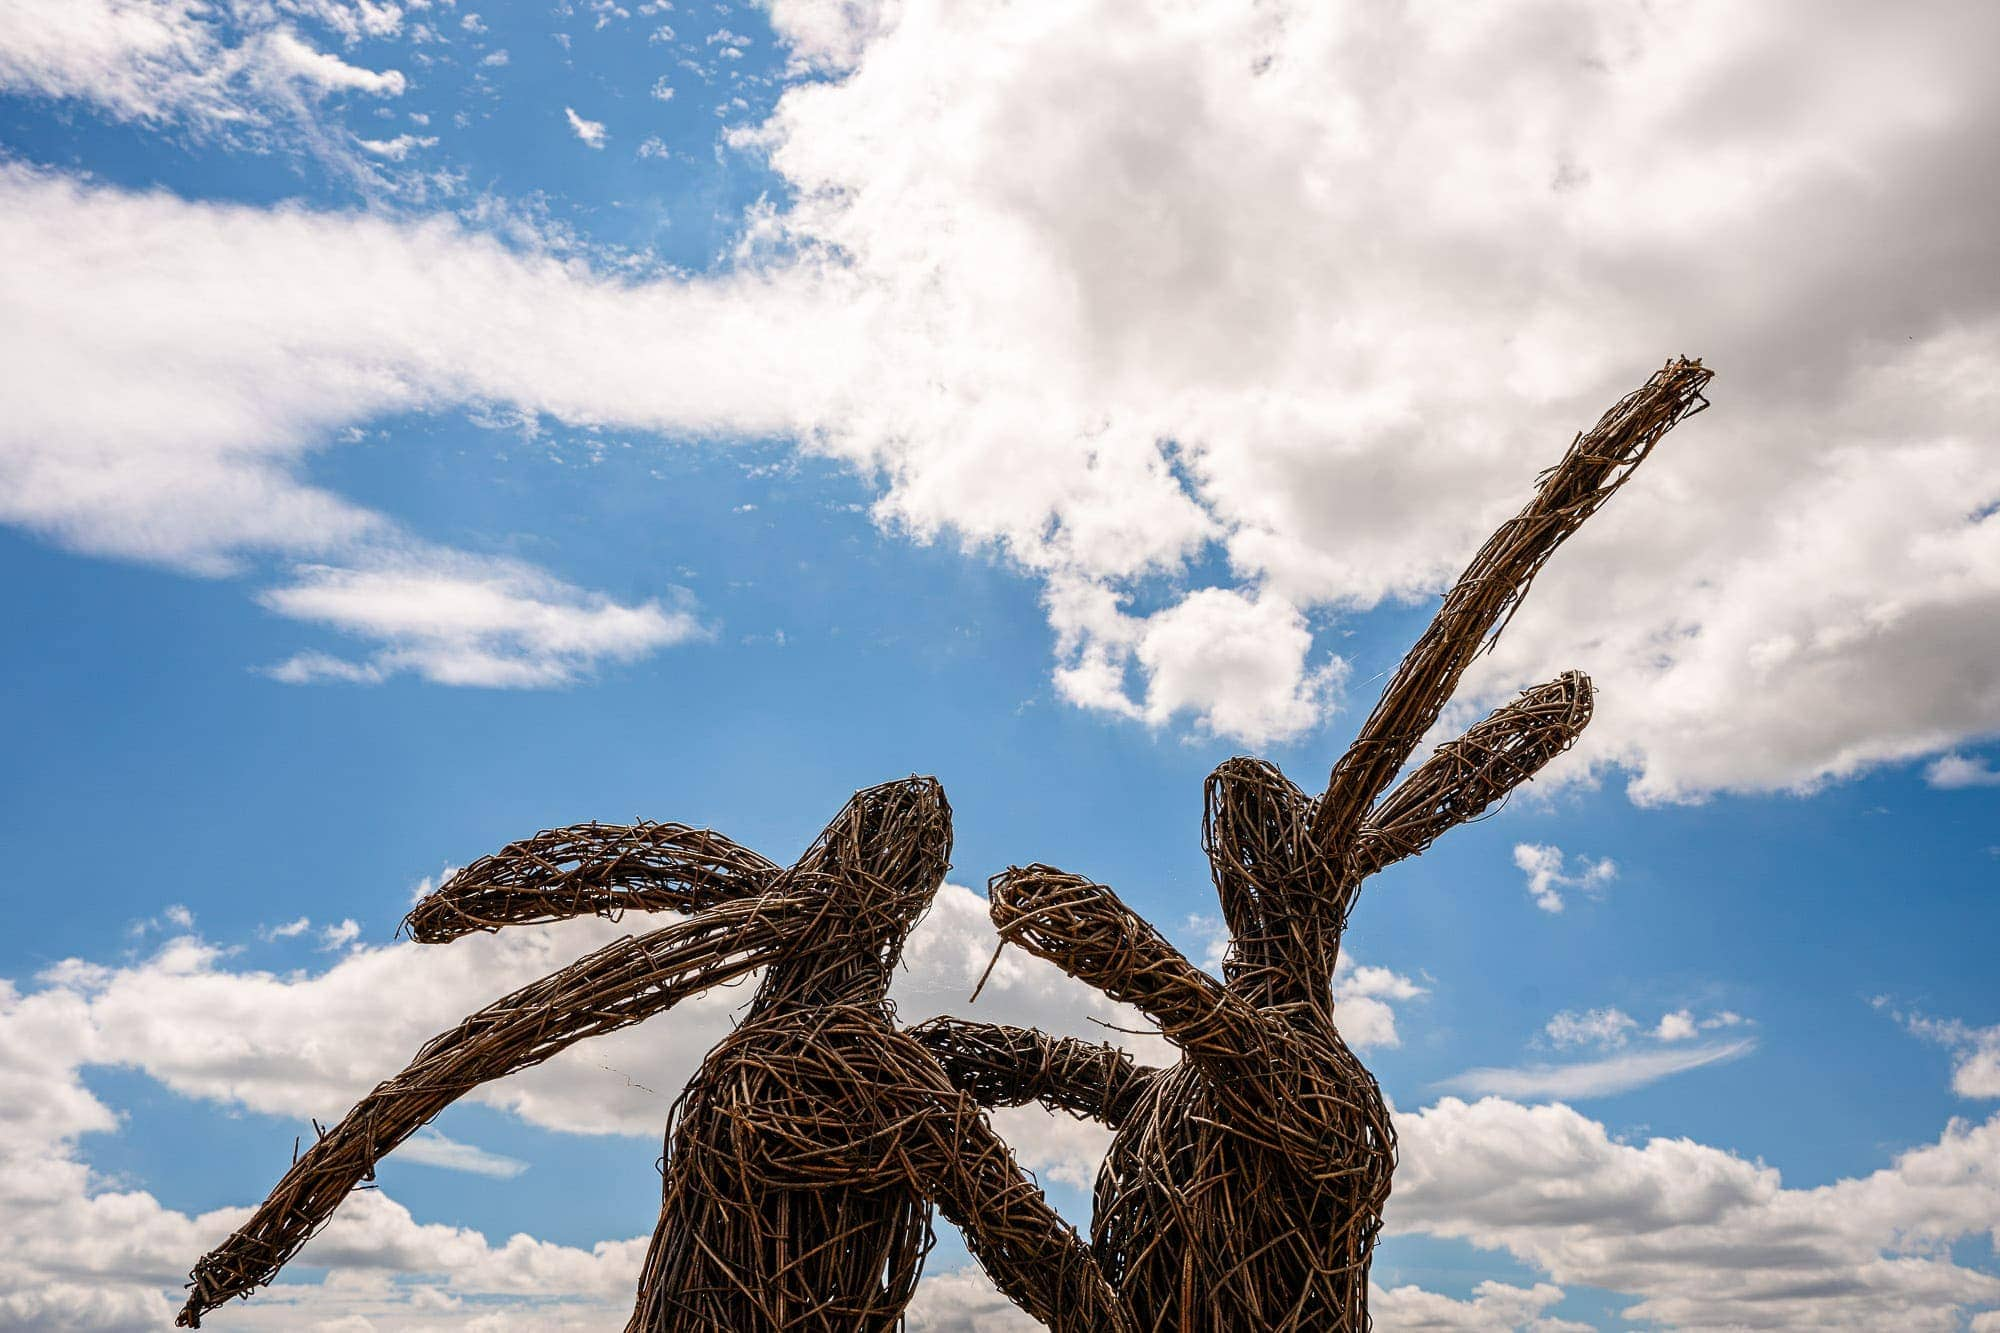 Two Fighting Hares statue at De Vere Wokefield Estate